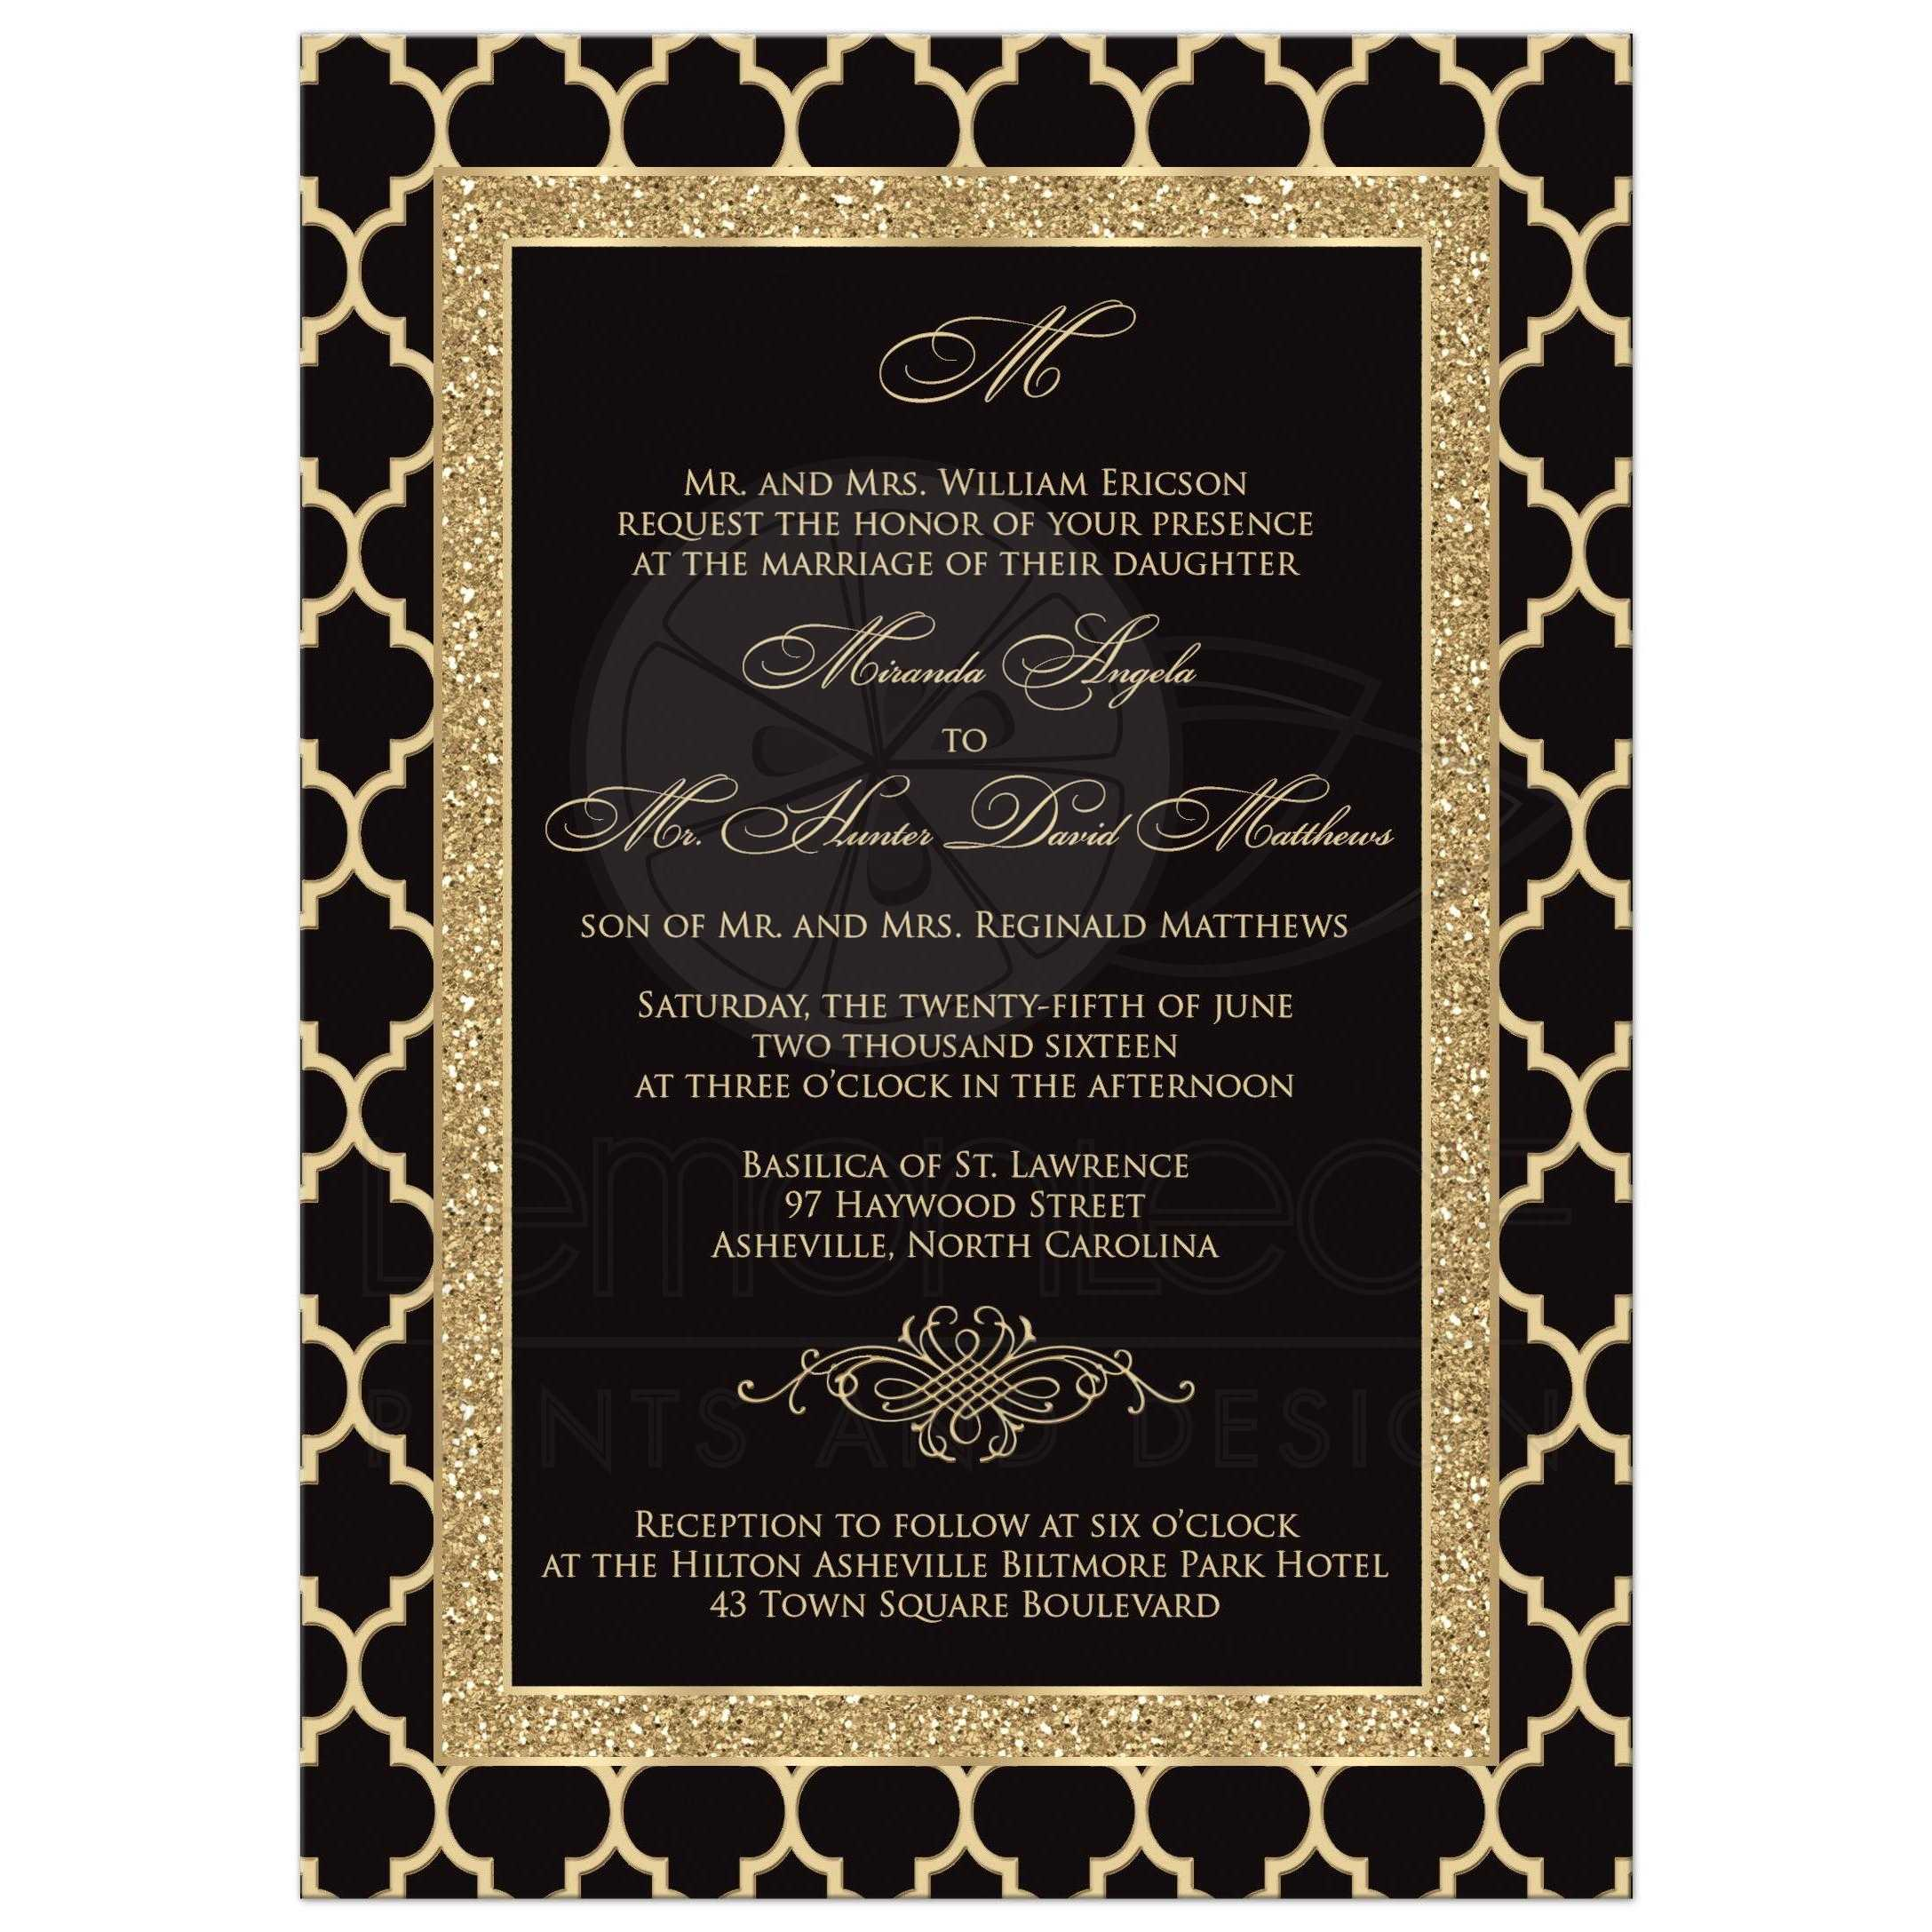 Monogrammed Wedding Invitation | Black, Gold Quatrefoil, Scroll ...